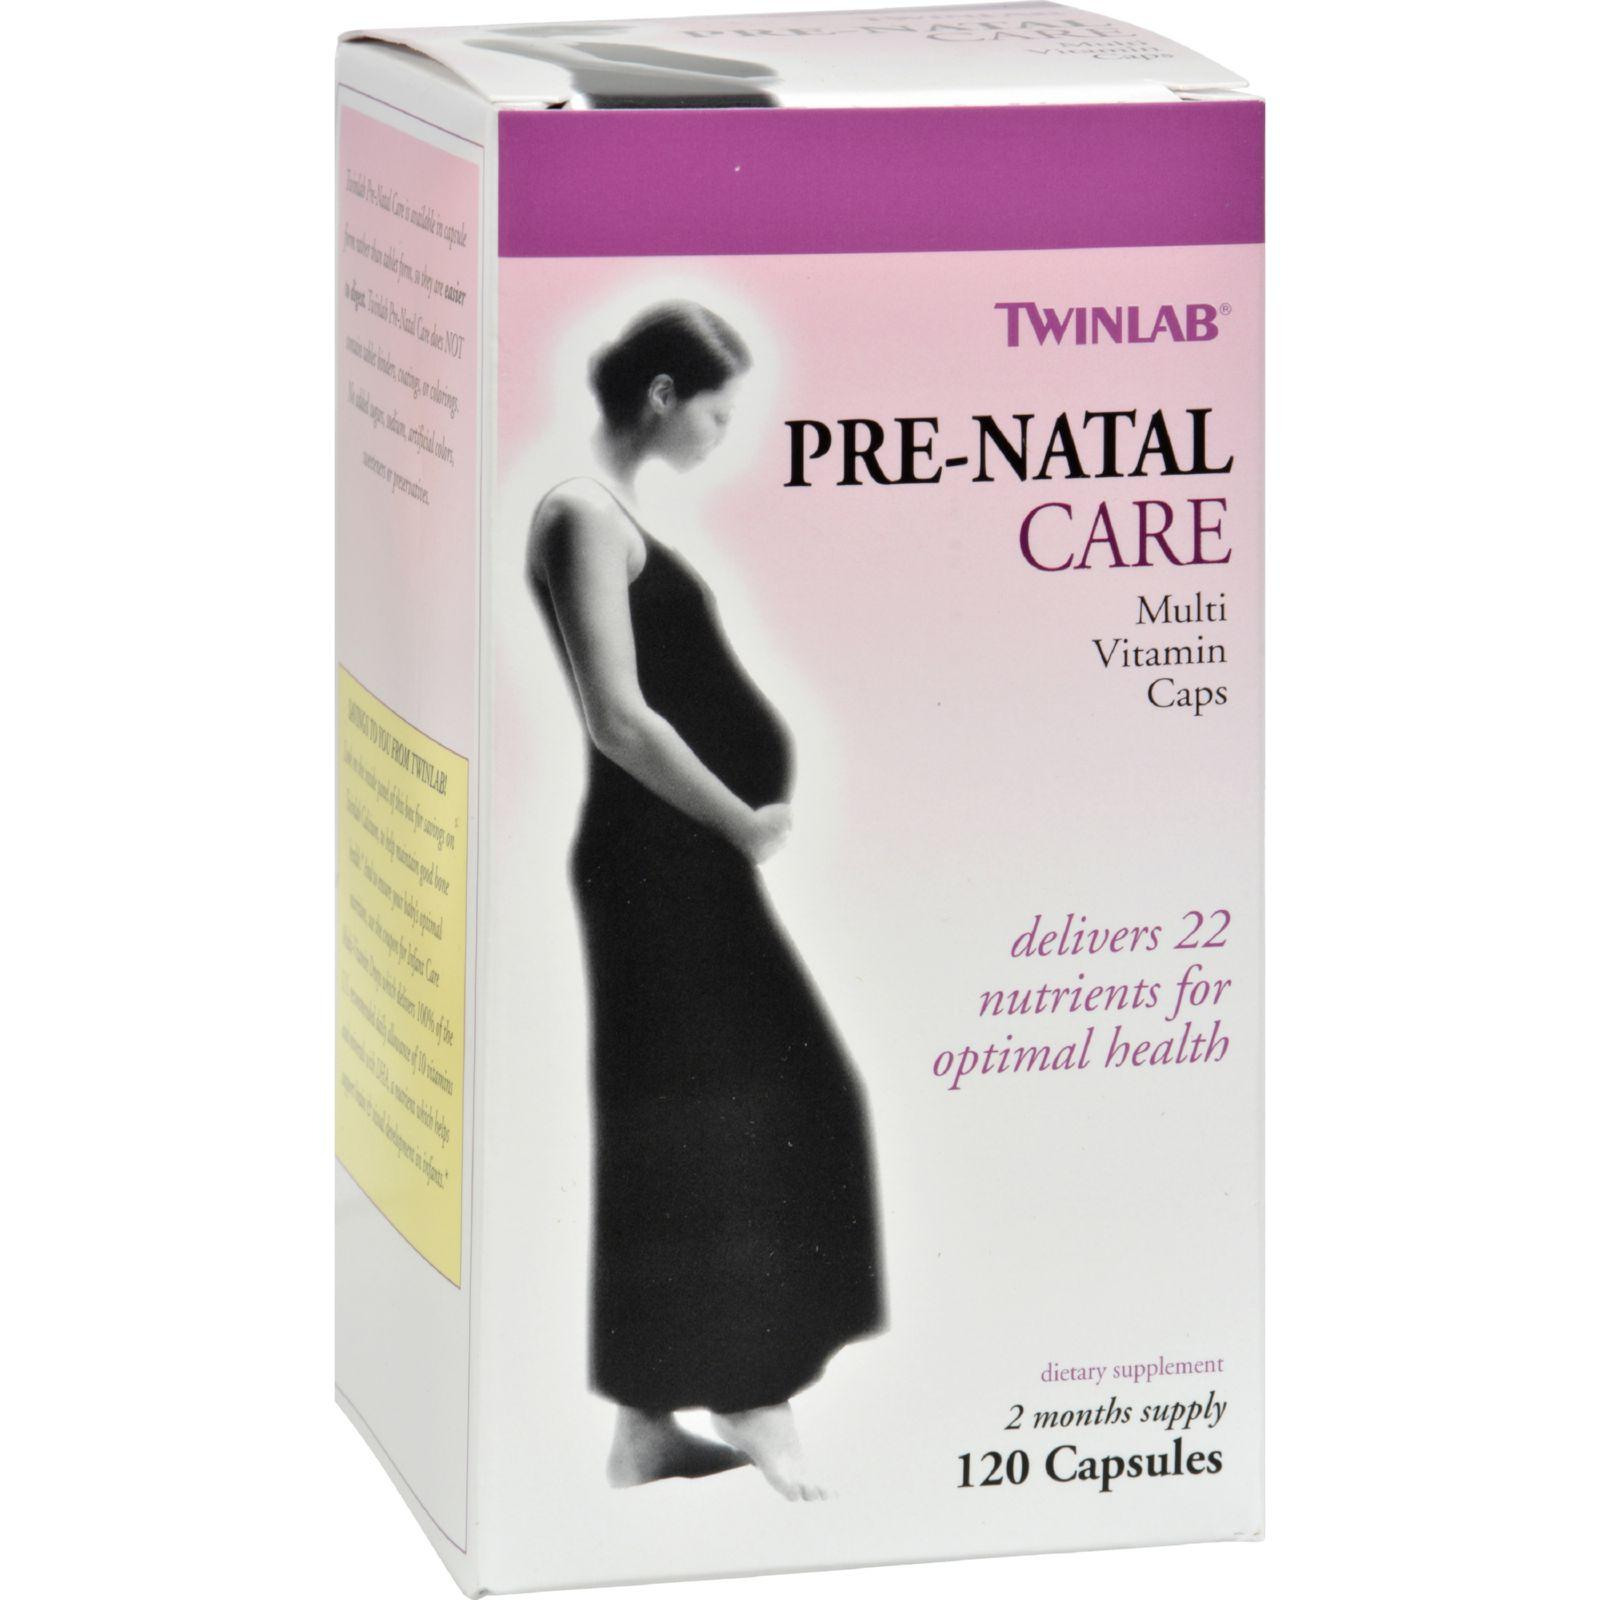 Twinlab Pre-Natal Care Multi Vitamin Caps, 120 count